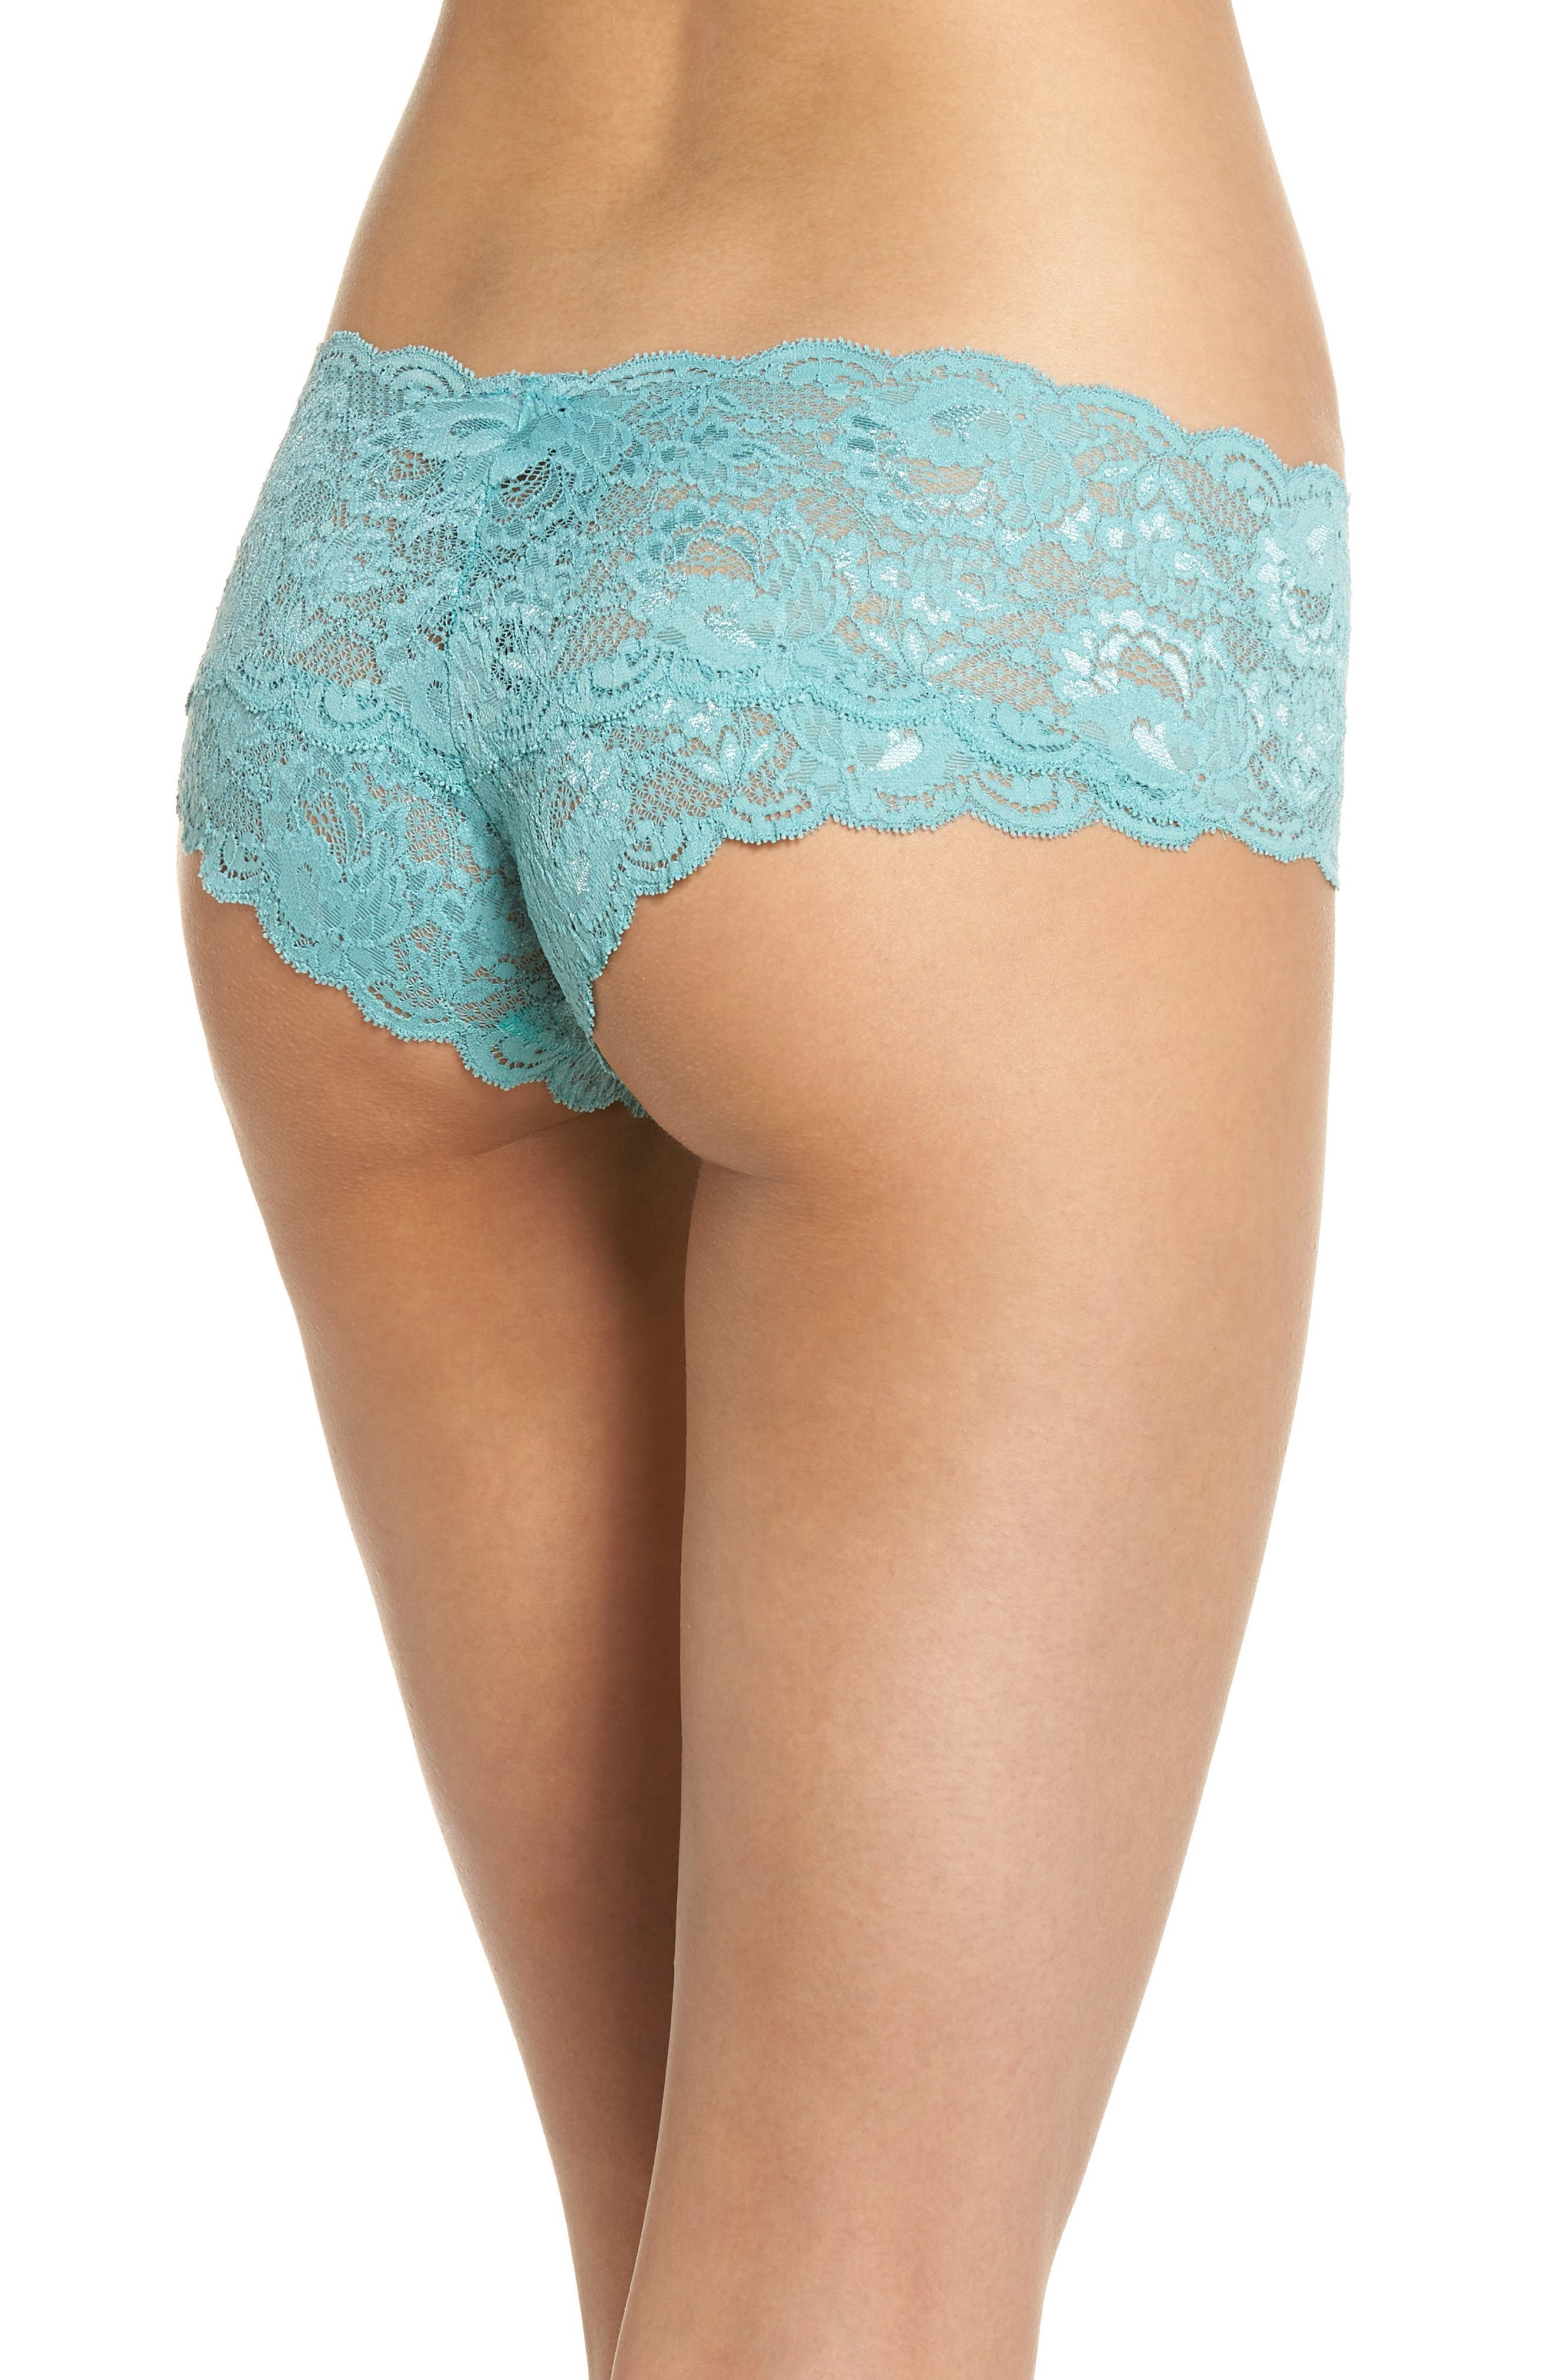 'Never Say Never' Hipster Briefs,                             Alternate thumbnail 2, color,                             Dusty Turquoise